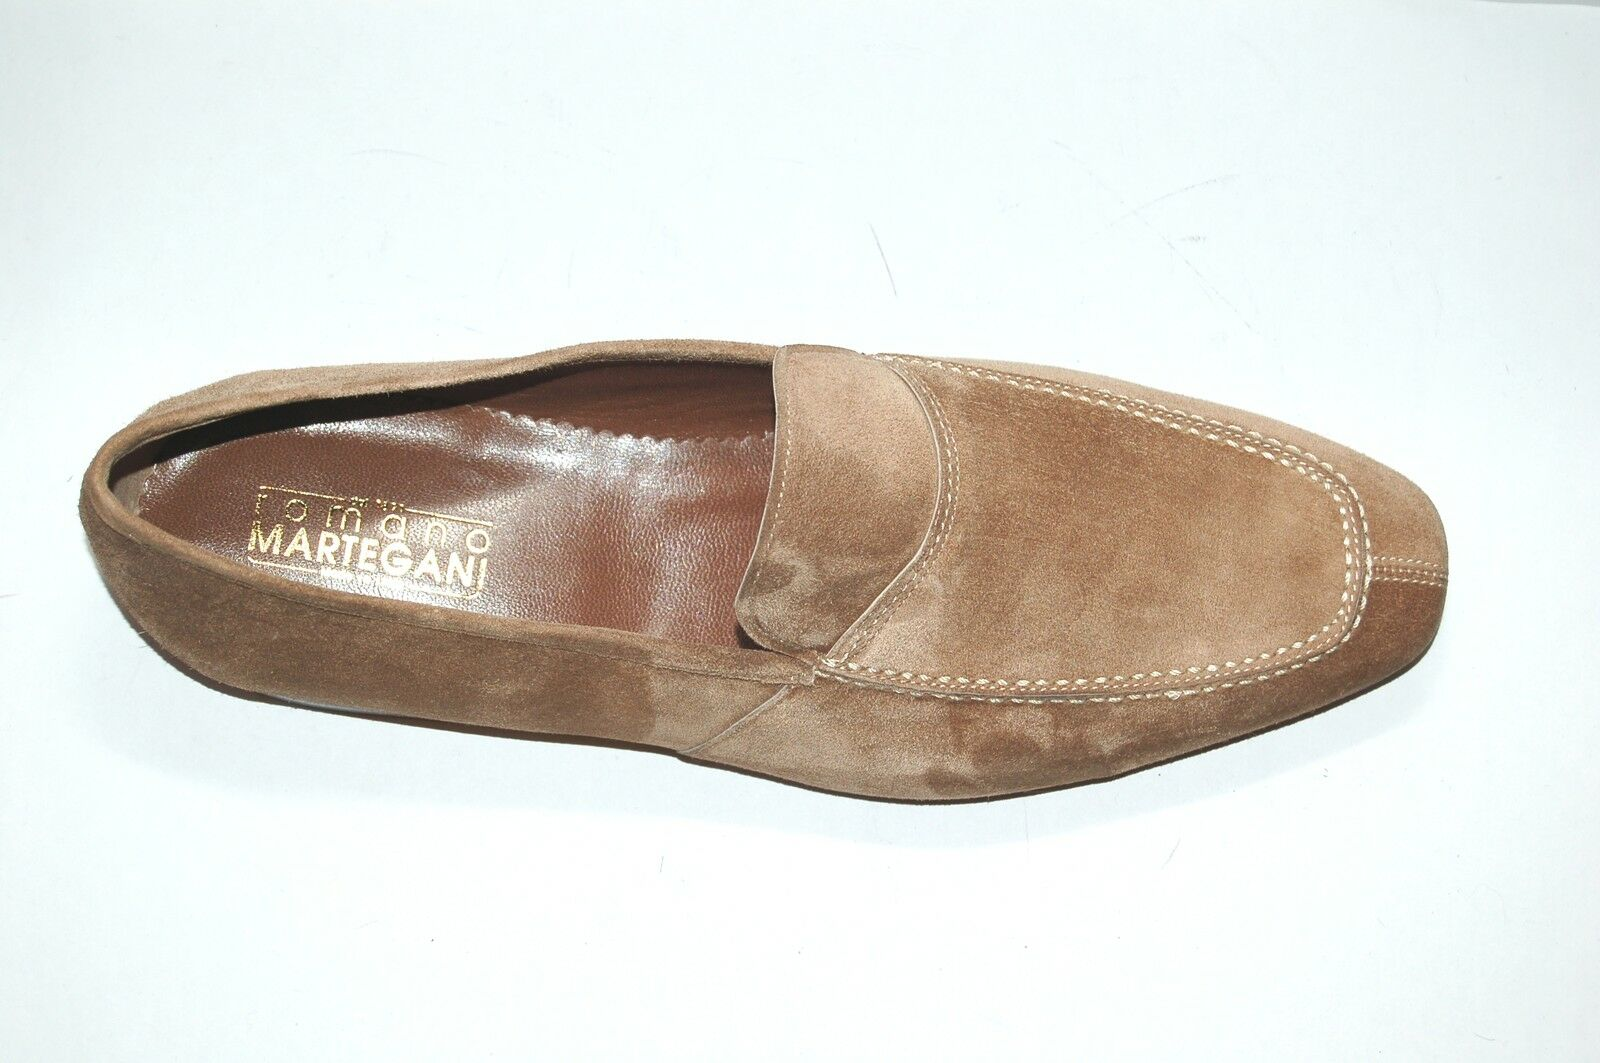 MAN - LOAFER - SUEDE SUEDE SUEDE COL.TURTLEDOVE - LEATHER SOLE - BLAKE CONSTRUCTION | Queensland  cb6c3a